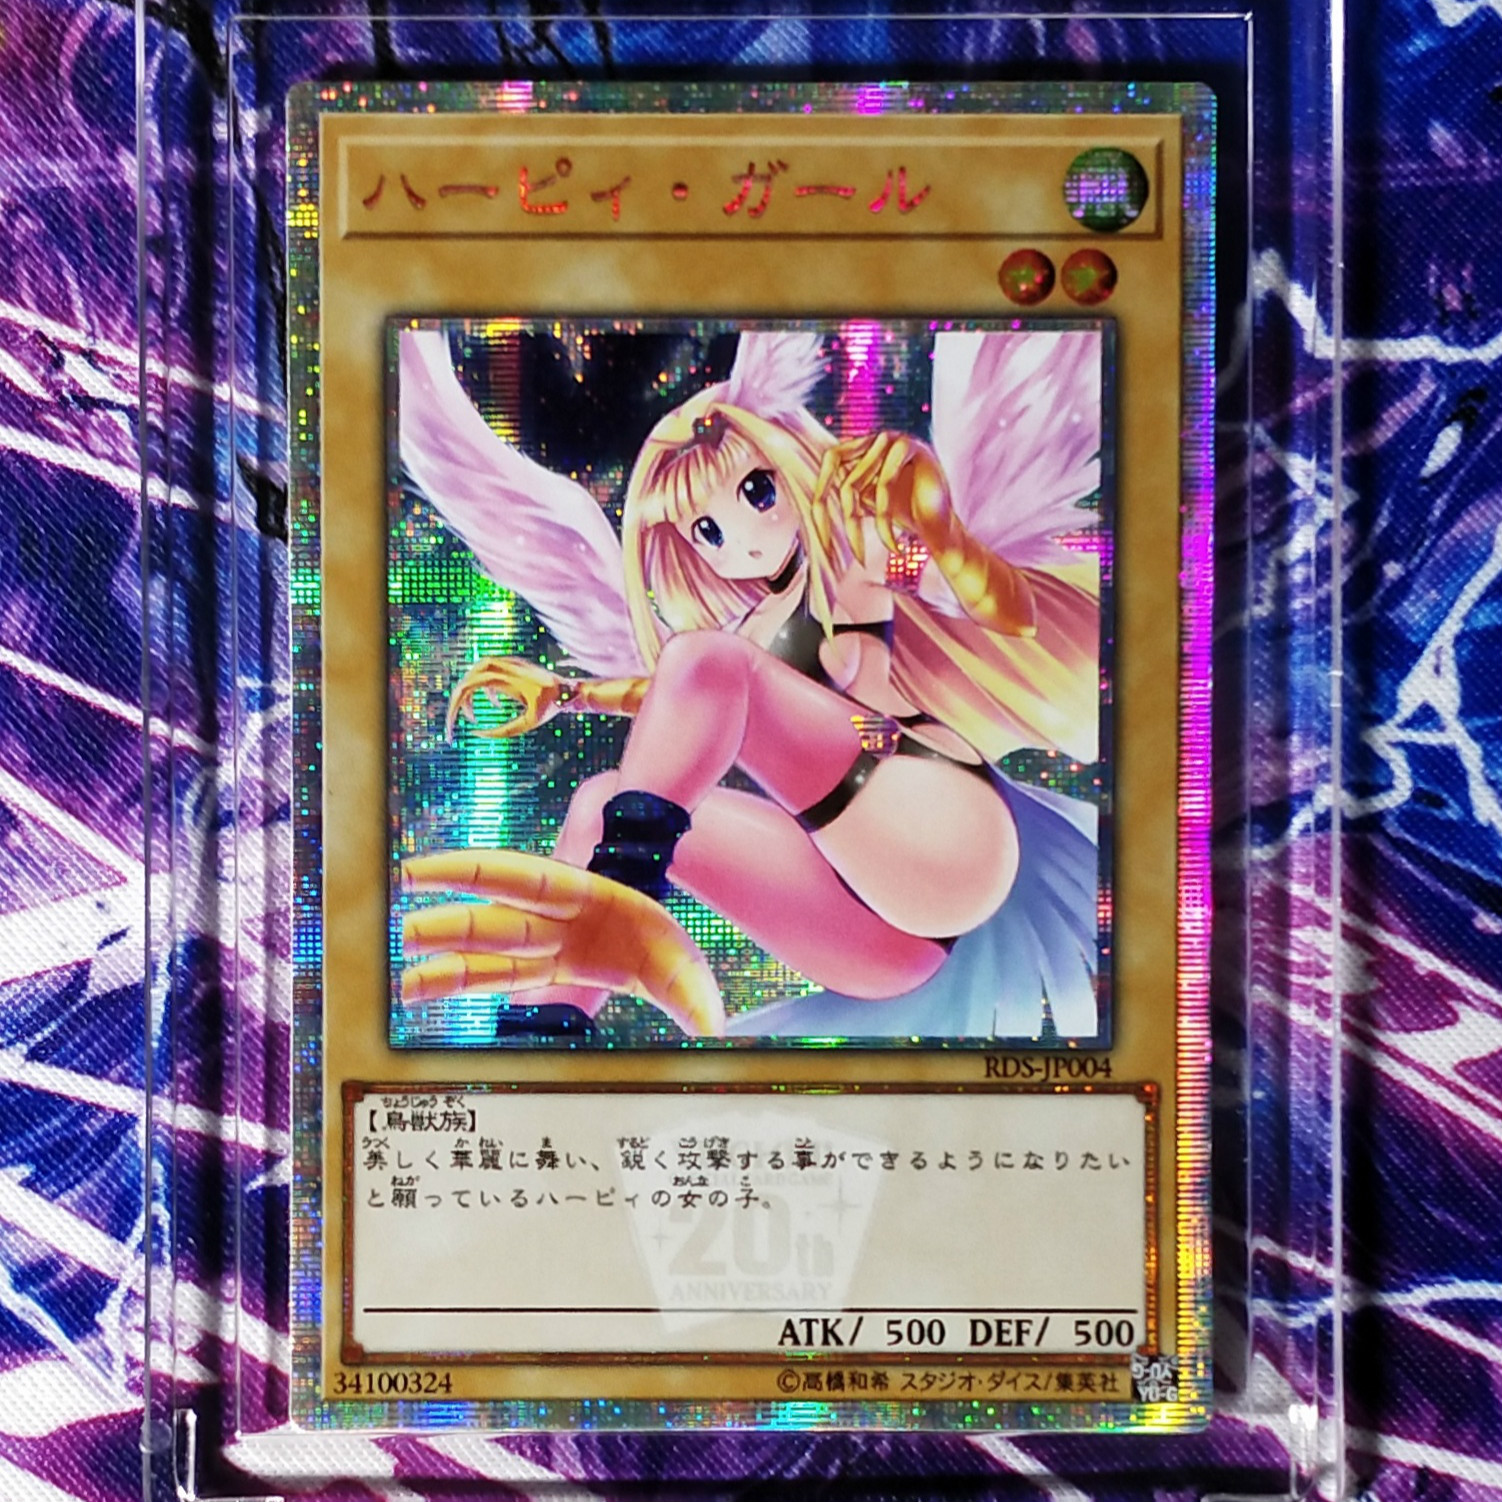 Yu Gi Oh Harpie Girl DIY Colorful Toys Hobbies Hobby Collectibles Game Collection Anime Cards